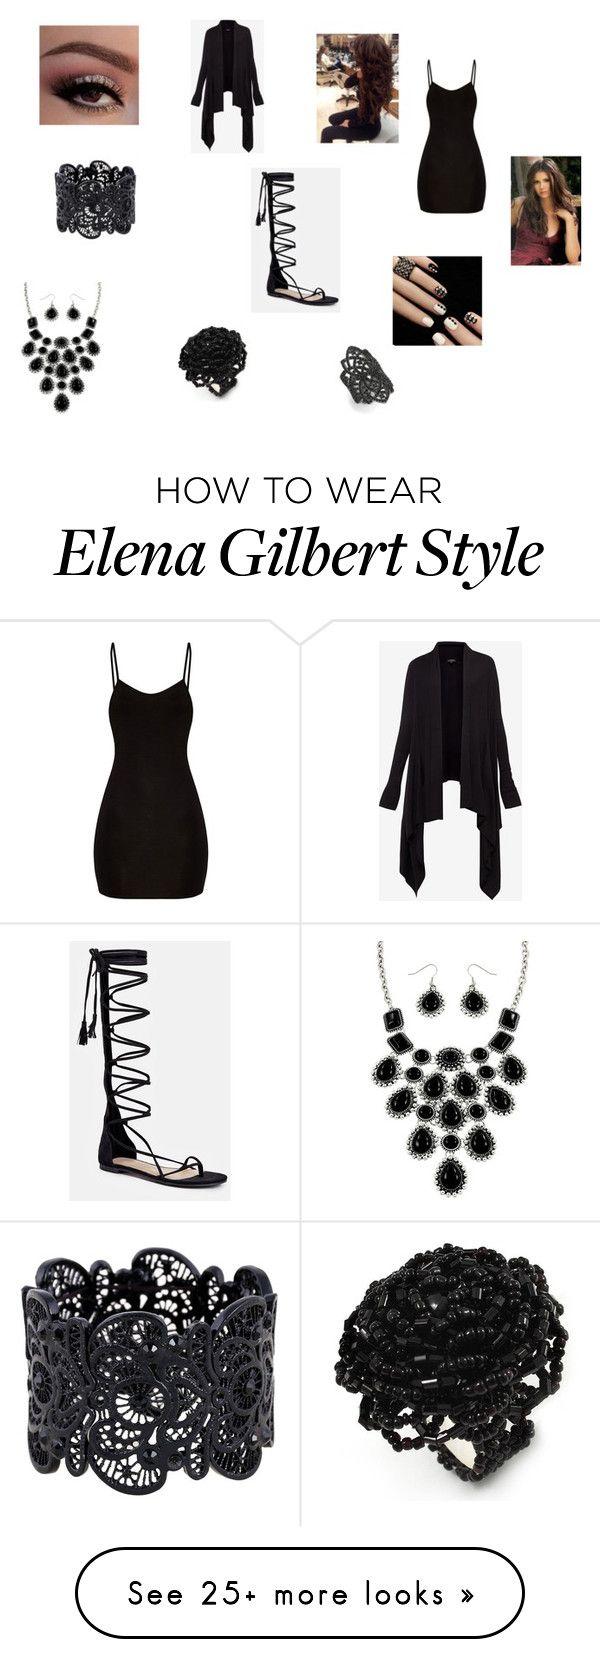 """""""Renesmee's Oufit for Dawn's Party"""" by singlemom on Polyvore featuring Ted Baker, JustFab and nOir"""